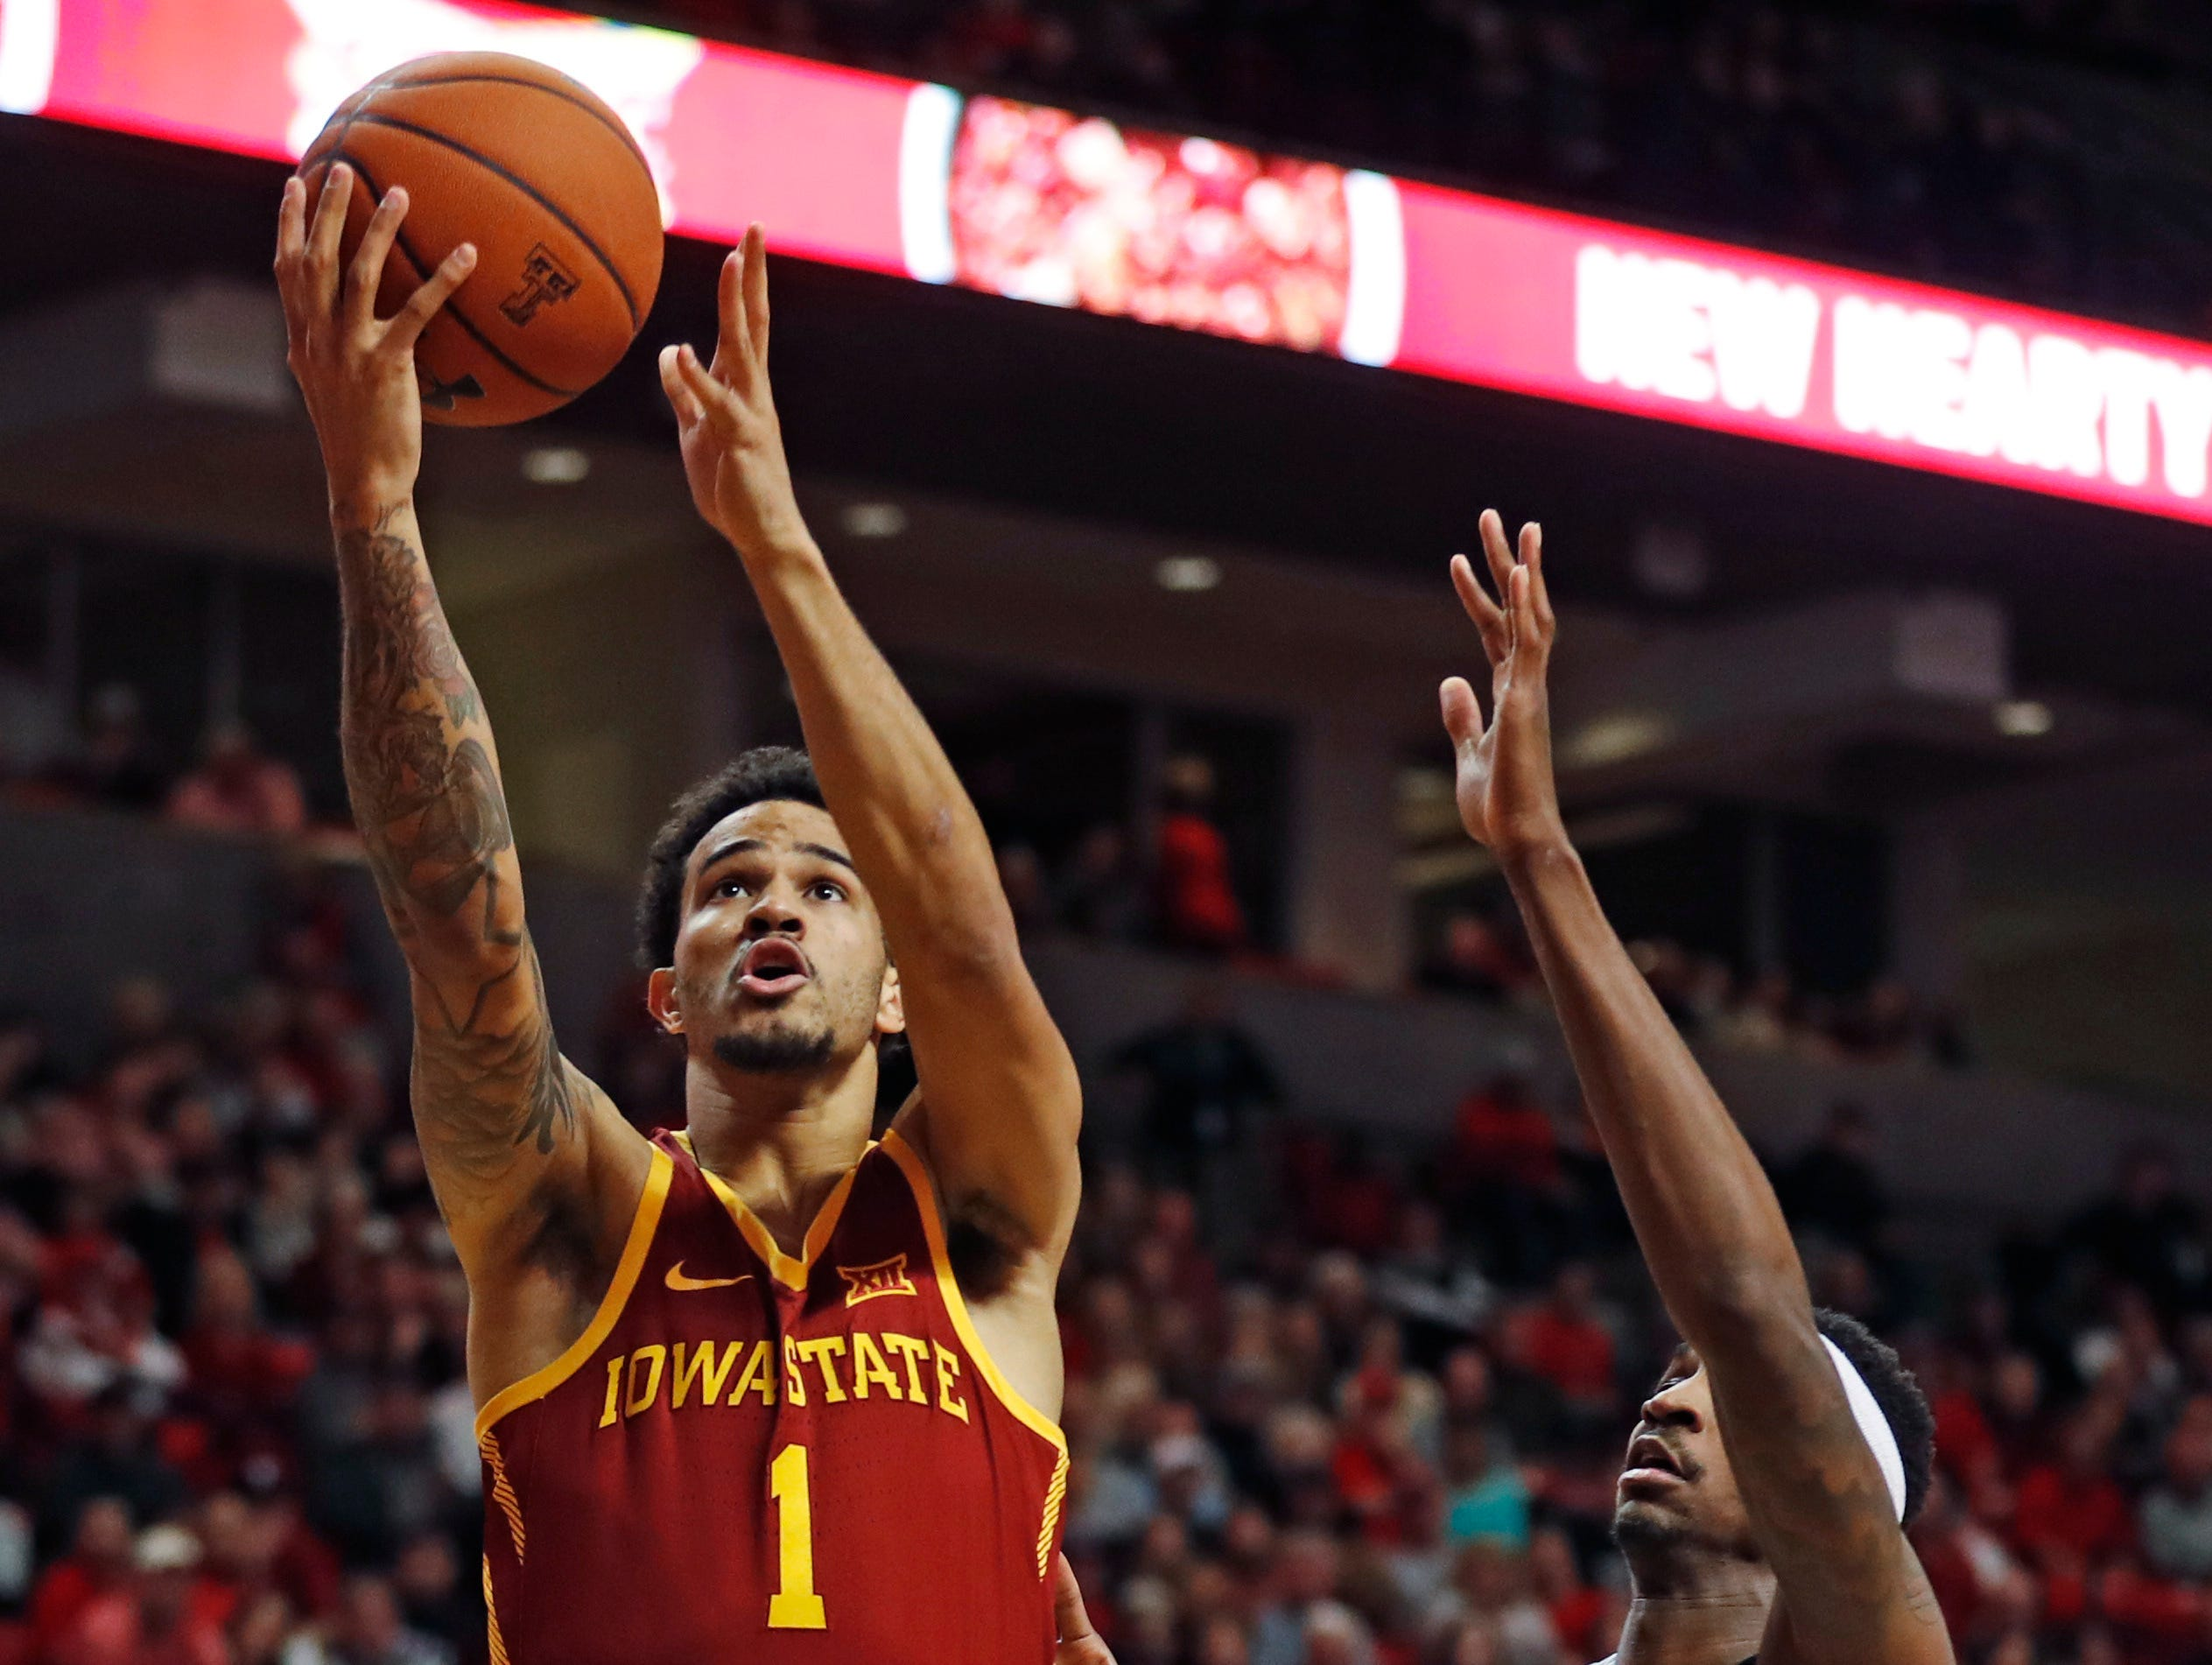 Iowa State's Nick Weiler-Babb (1) lays up the ball in front of Texas Tech's Tariq Owens (11) during the second half of an NCAA college basketball game Wednesday, Jan. 16, 2019, in Lubbock, Texas.